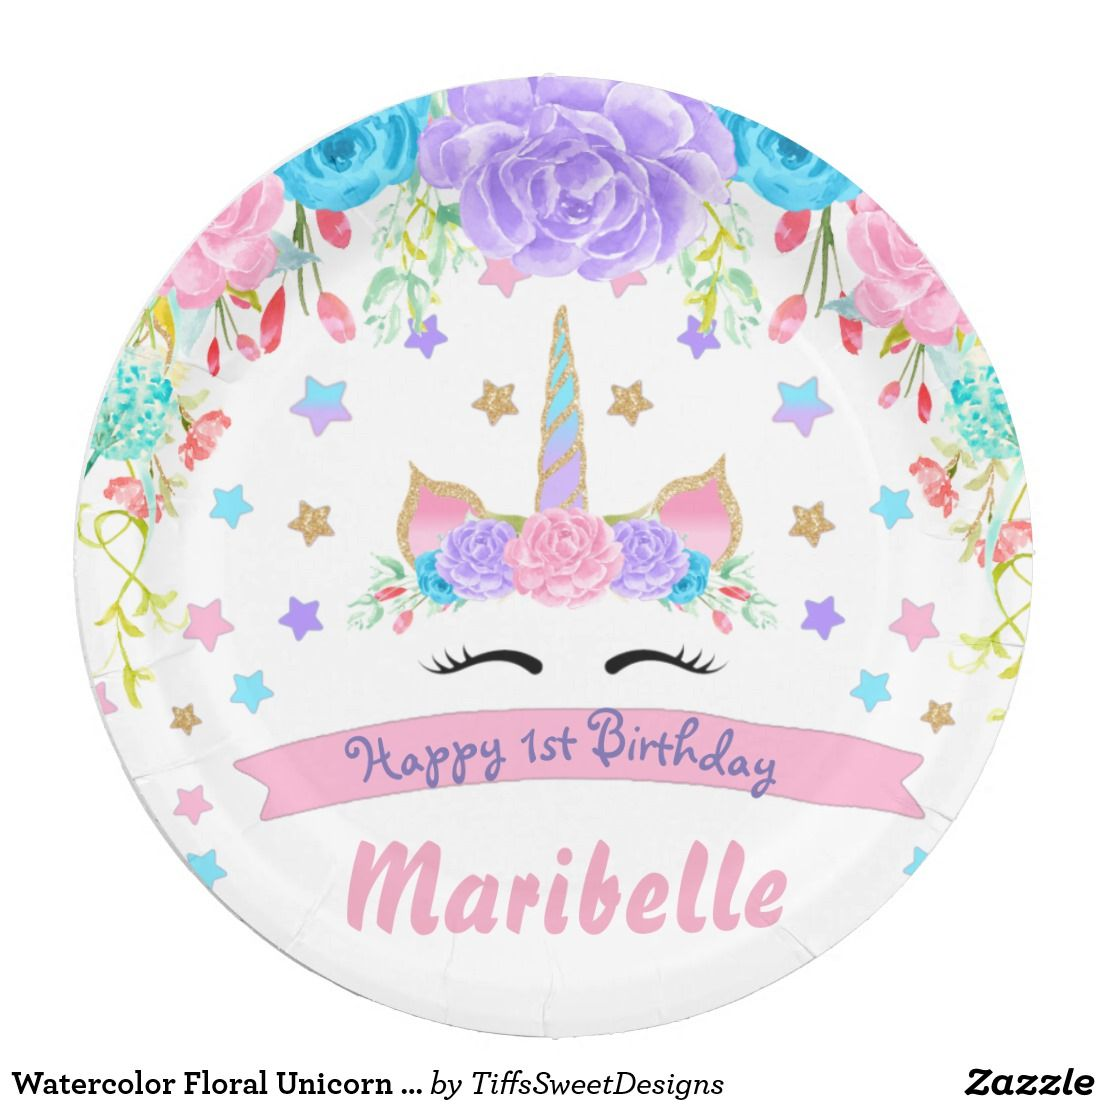 Watercolor Floral Unicorn Face Birthday Party Paper Plate  sc 1 st  Pinterest & Watercolor Floral Unicorn Face Birthday Party Paper Plate | Unicorn ...